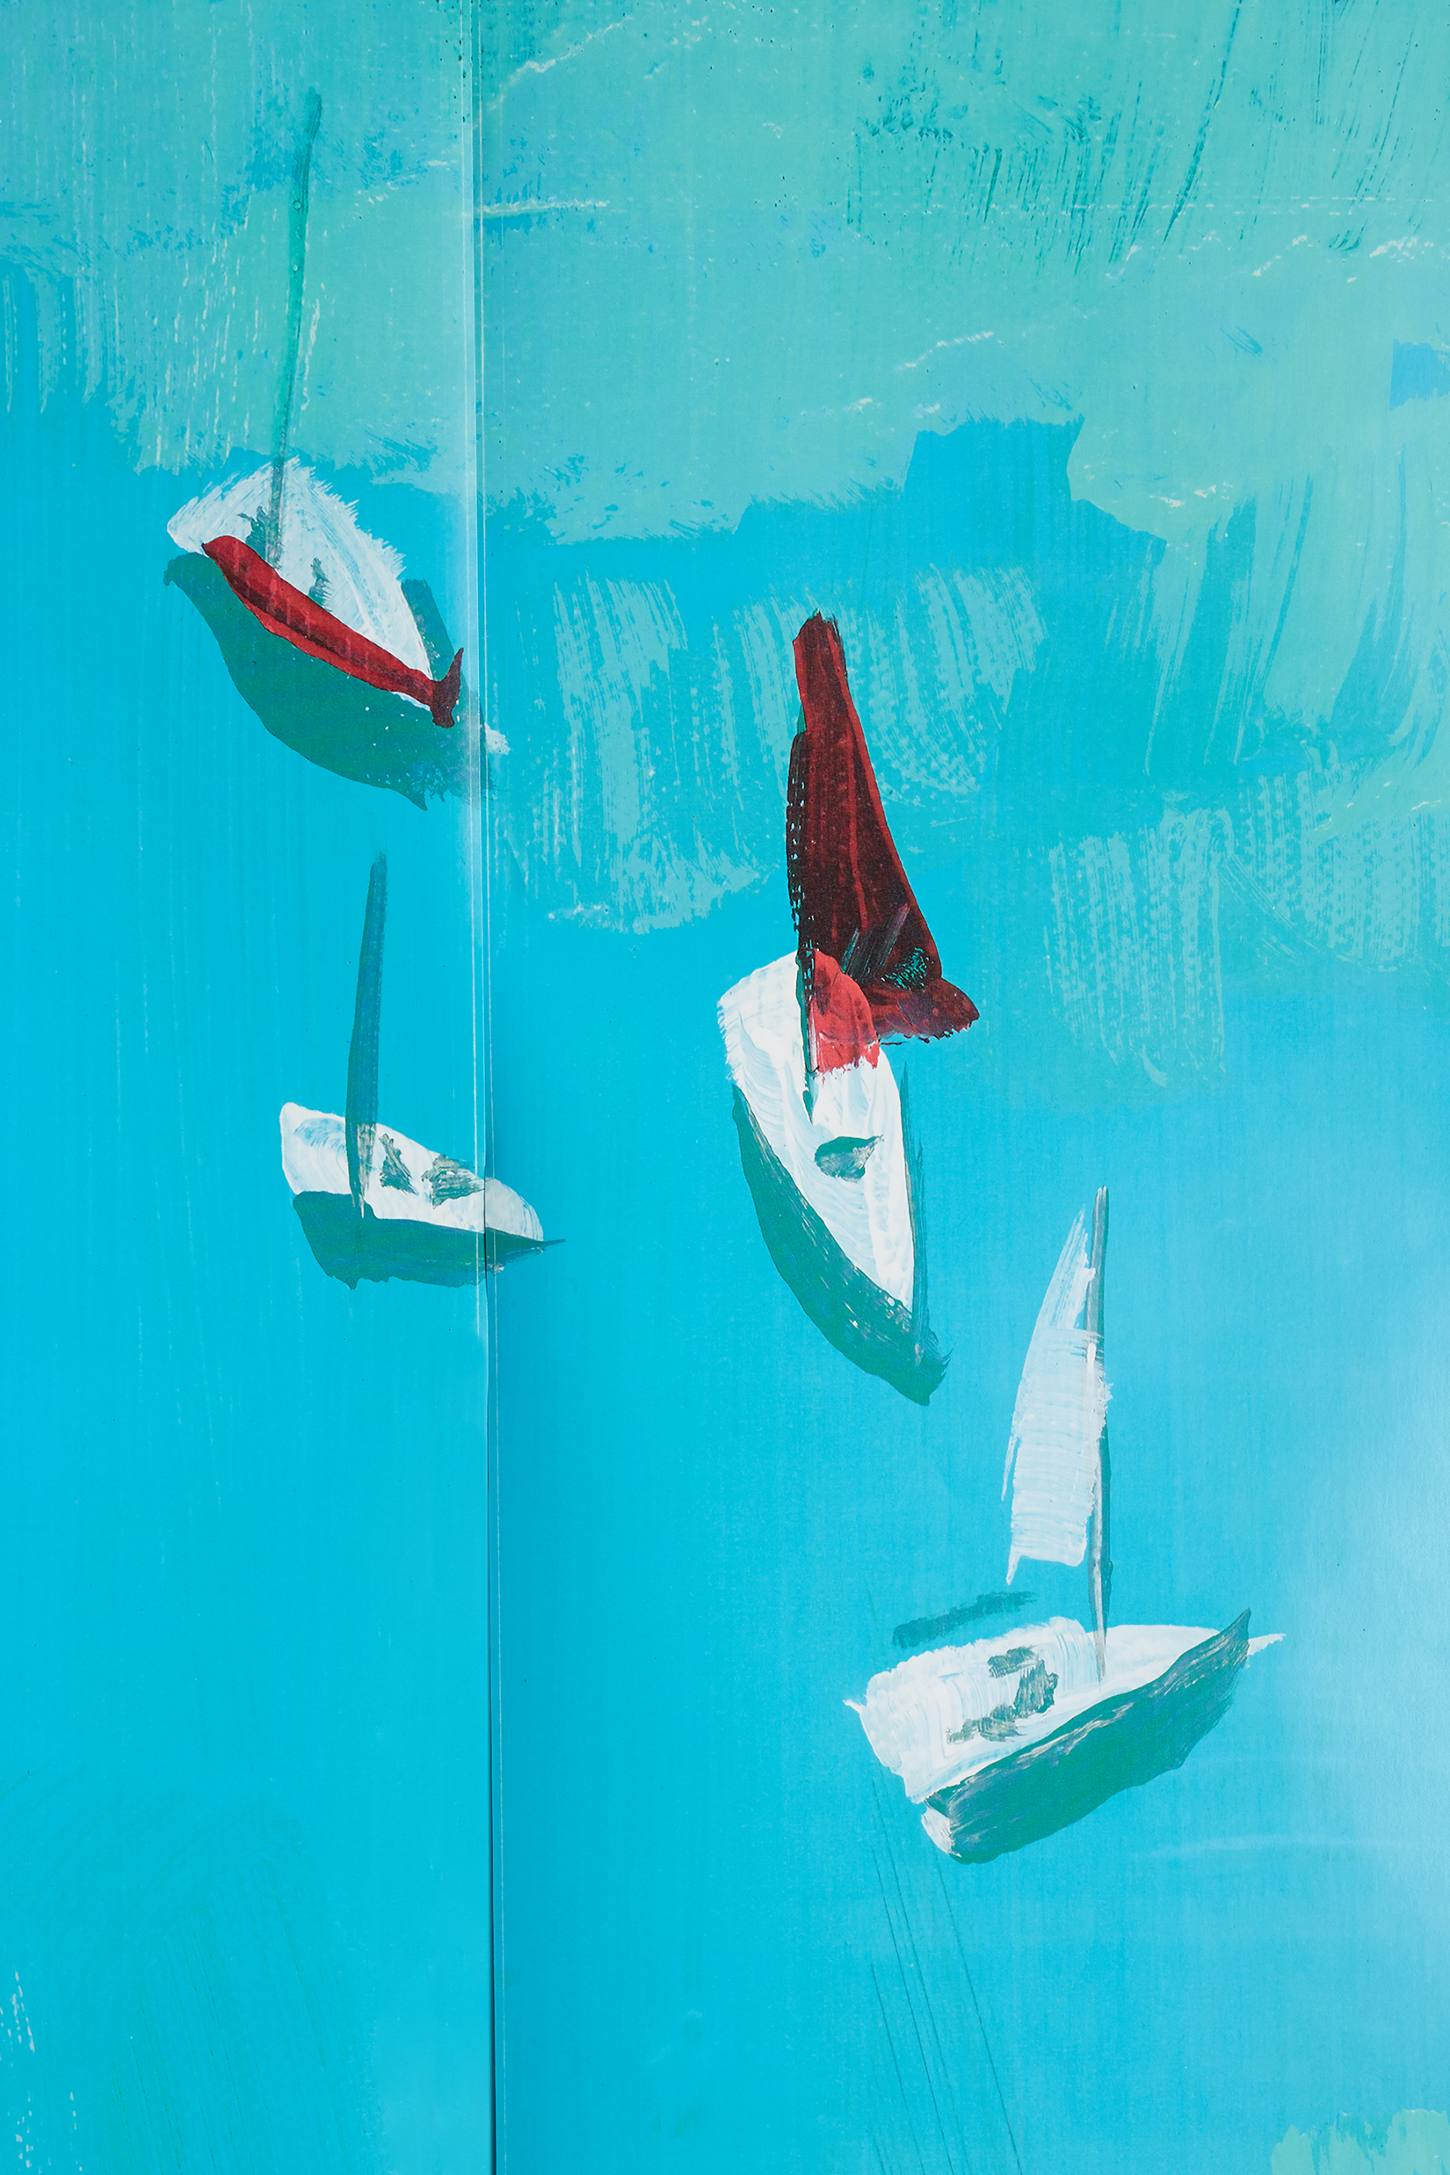 Slide View: 3: Décor Mural Sailing Scene